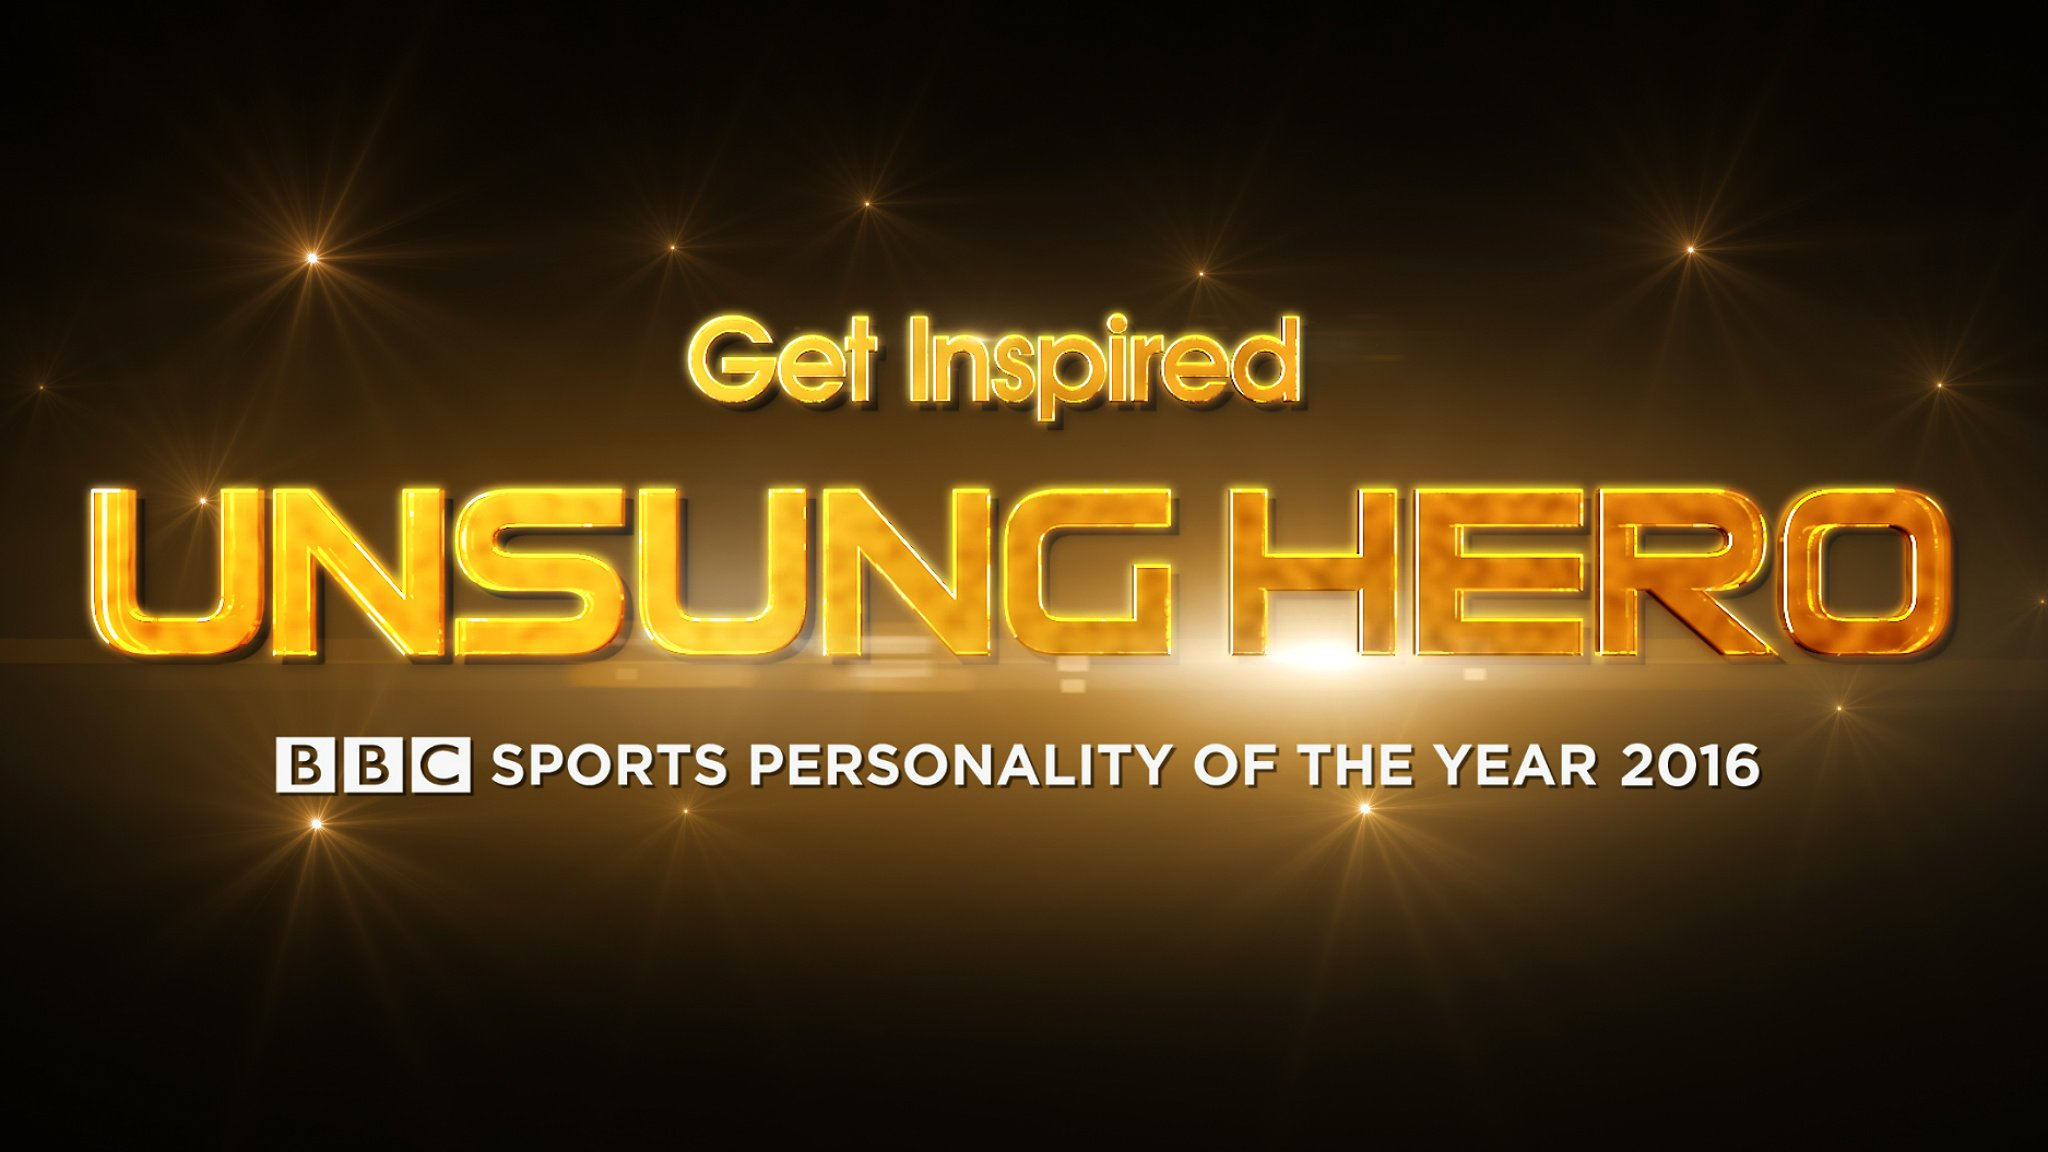 Sports Personality of the Year: Nominate your 2016 Get Inspired Unsung Hero